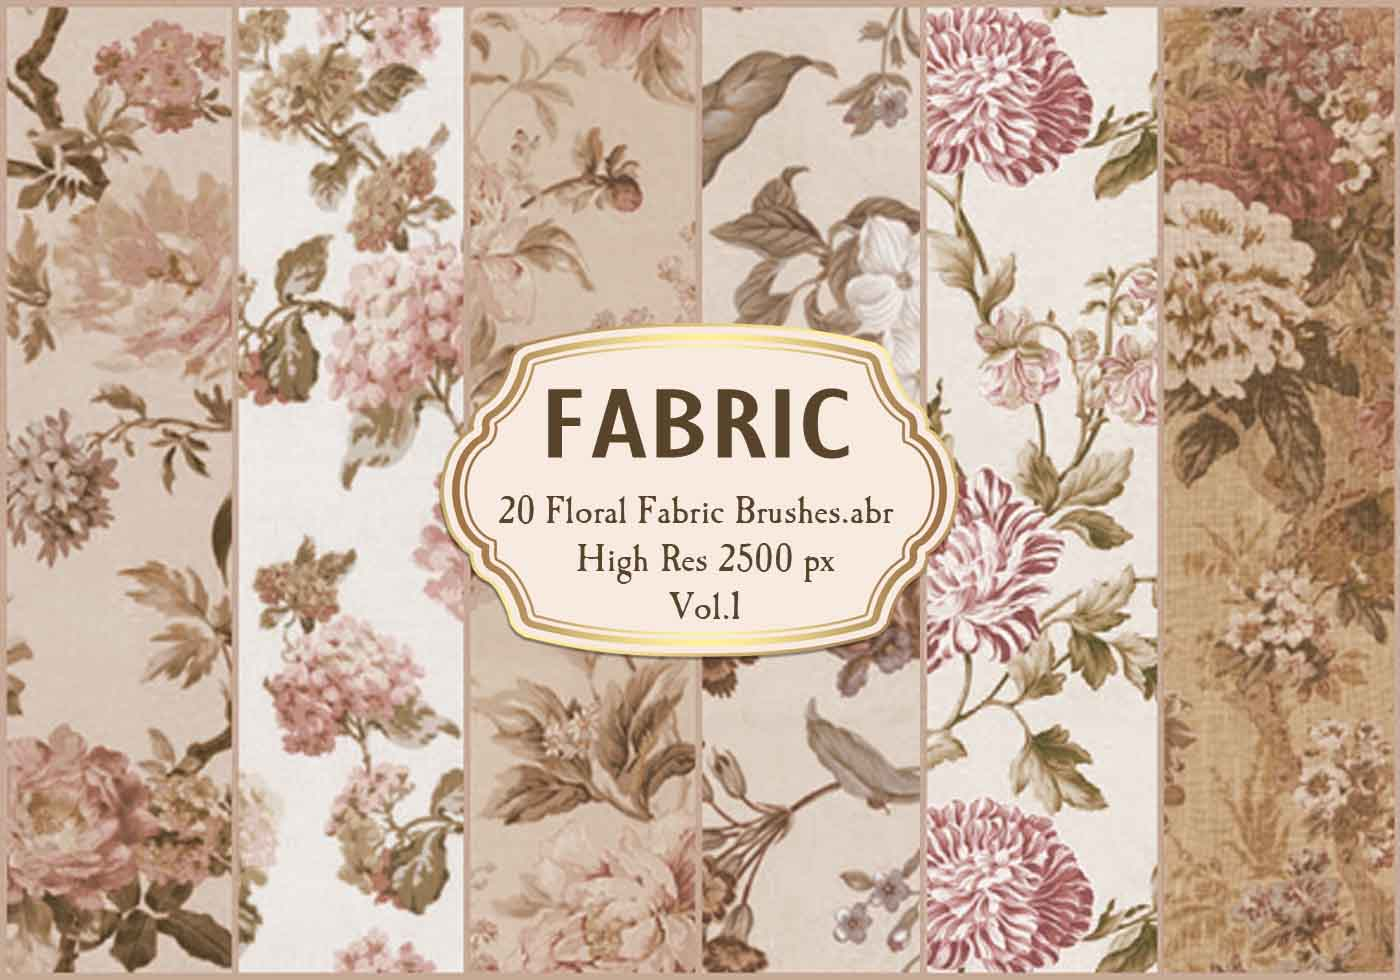 20 Floral Fabric Brushes Abr Vol 1 Free Photoshop